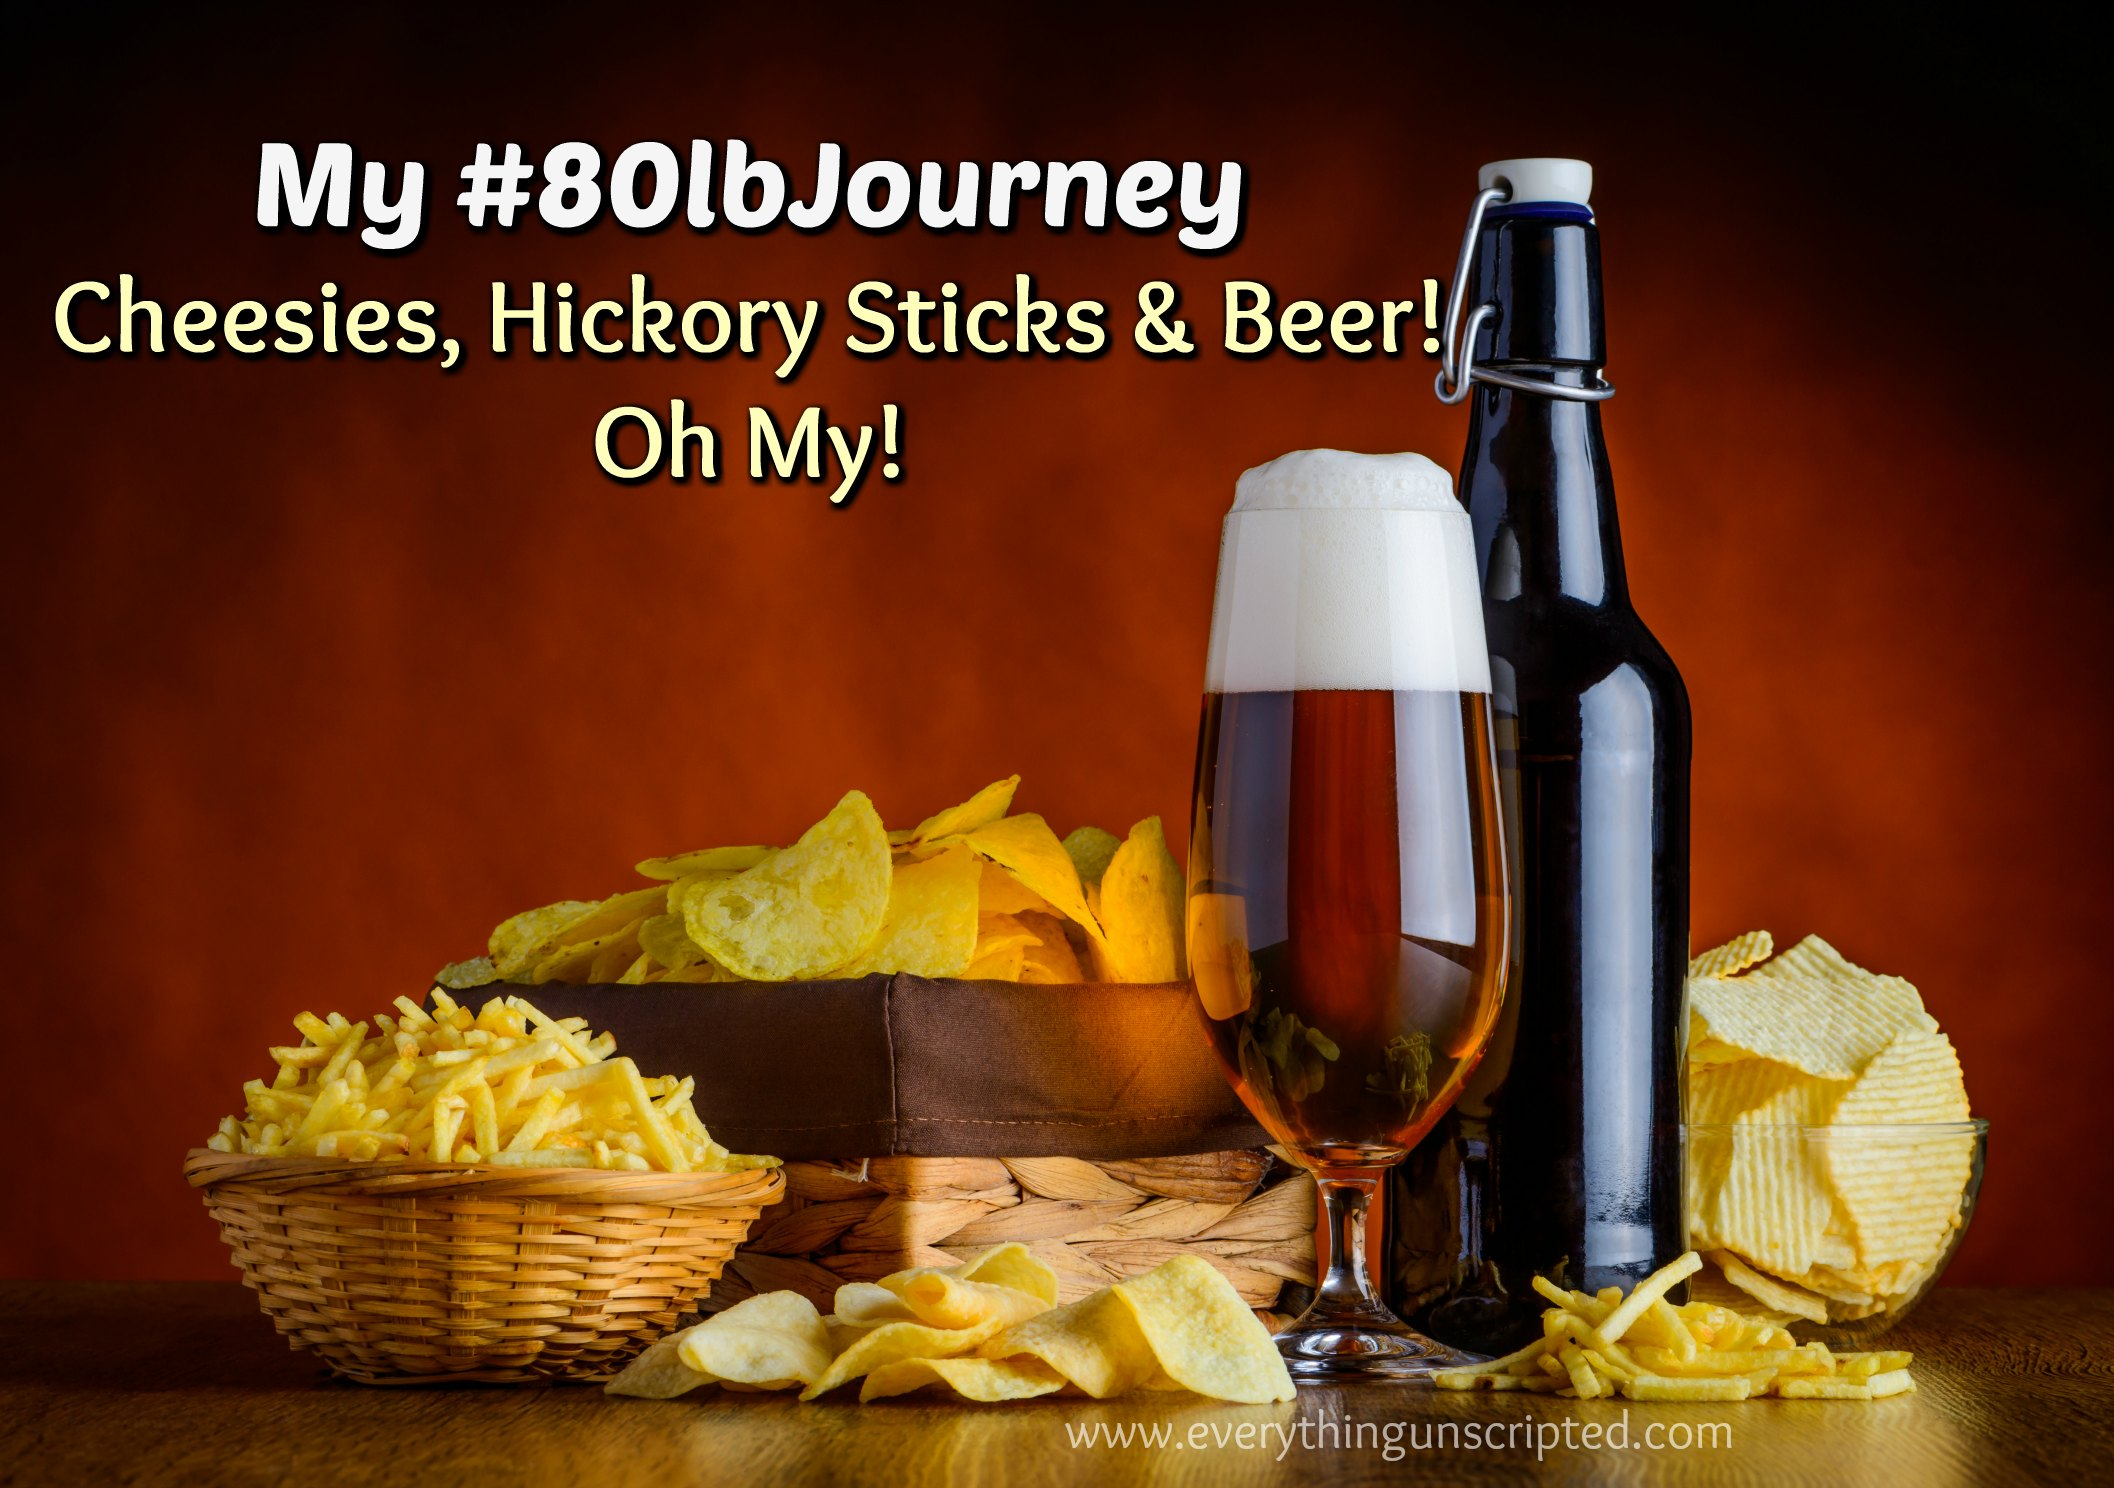 My #80lbJourney – Cheesies, Hickory Sticks and Beer! Oh My!